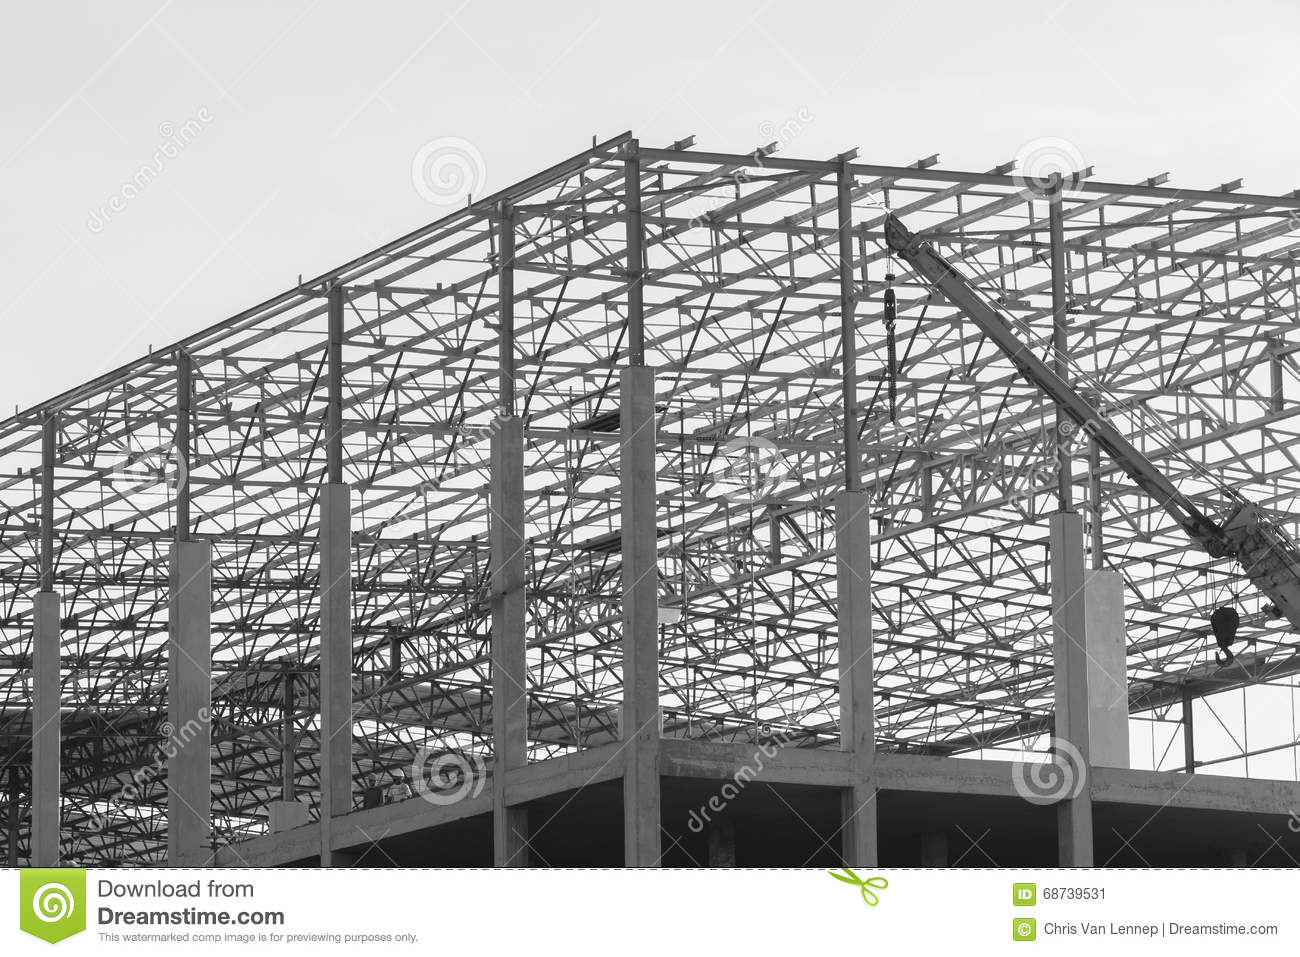 Black And White Building Construction : Construction framework building black and white stock